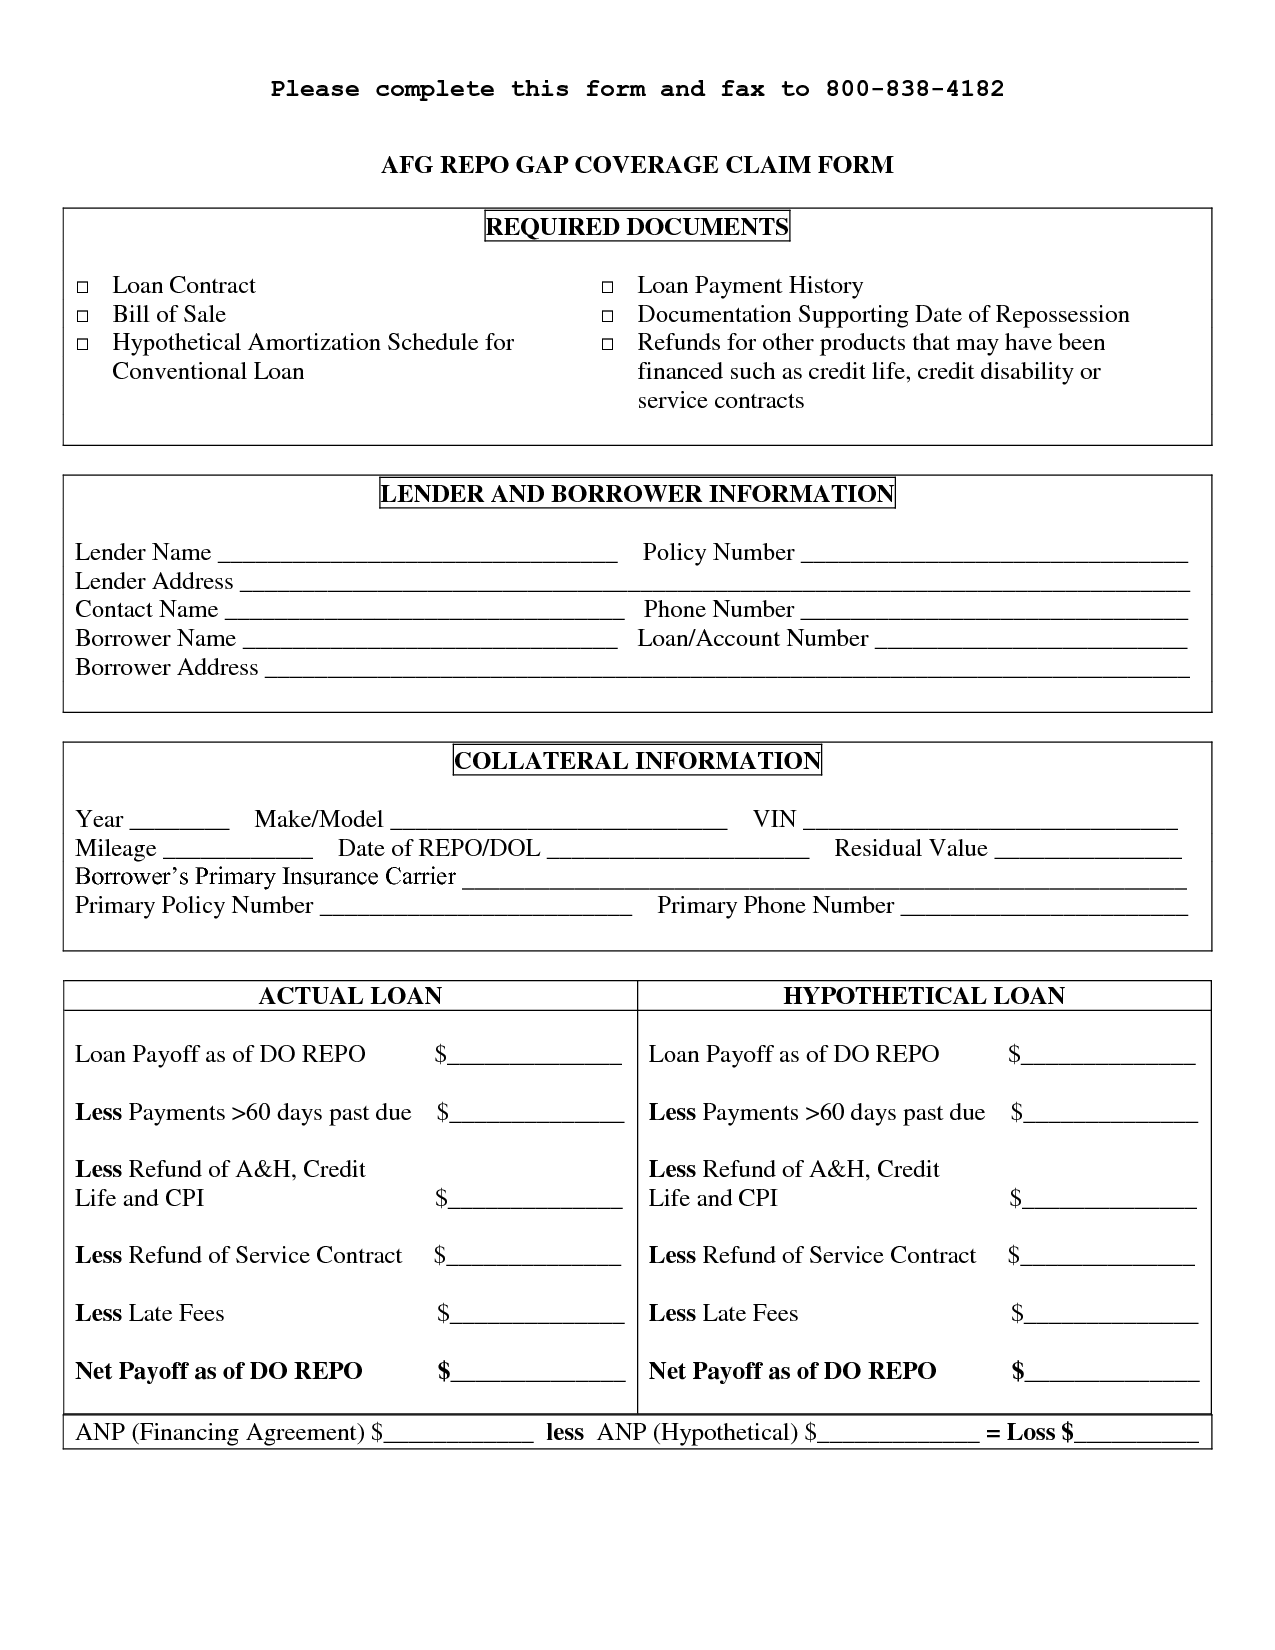 Private Loan Contract Template 5 Loan Agreement Templates To Write Perfect  Agreements, Loan Agreement Template Loan Contract Form With Sample, Personal  Loan ...  Personal Loan Agreement Template Microsoft Word